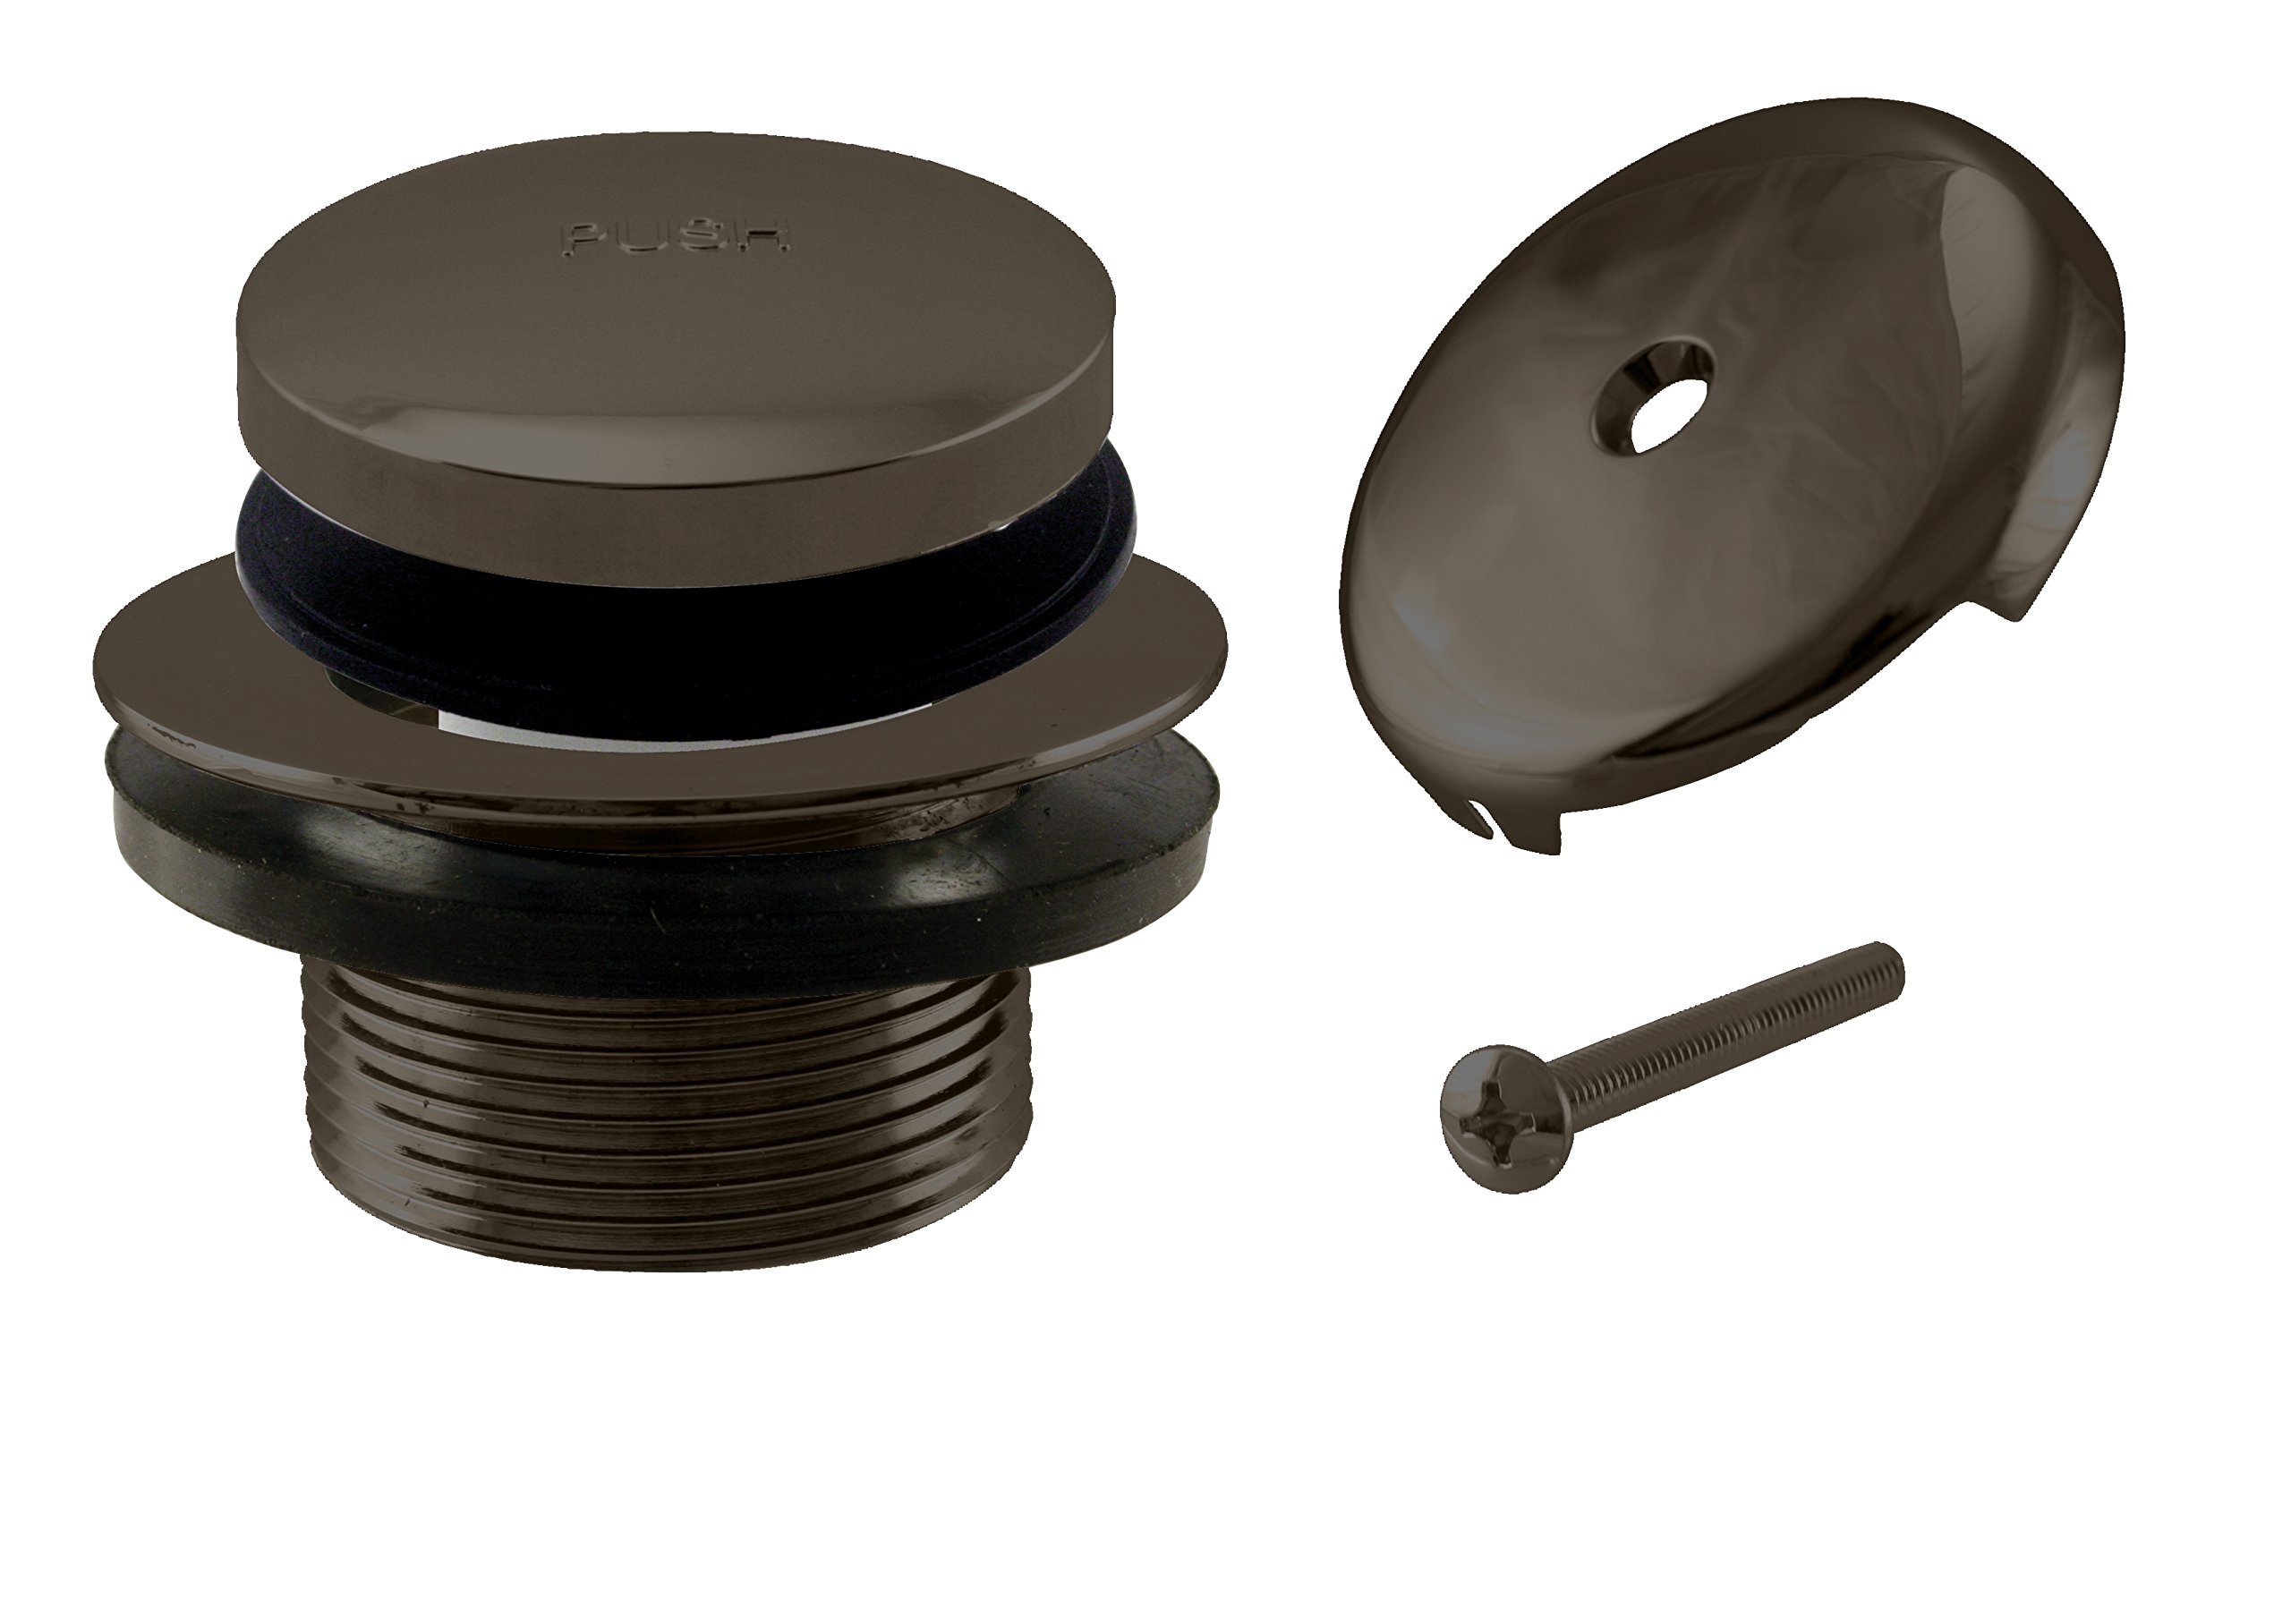 Westbrass Tip-Toe Coarse Thread Tub Trim Set with 1-Hole Overflow Faceplate, Oil Rubbed Bronze, R93-12